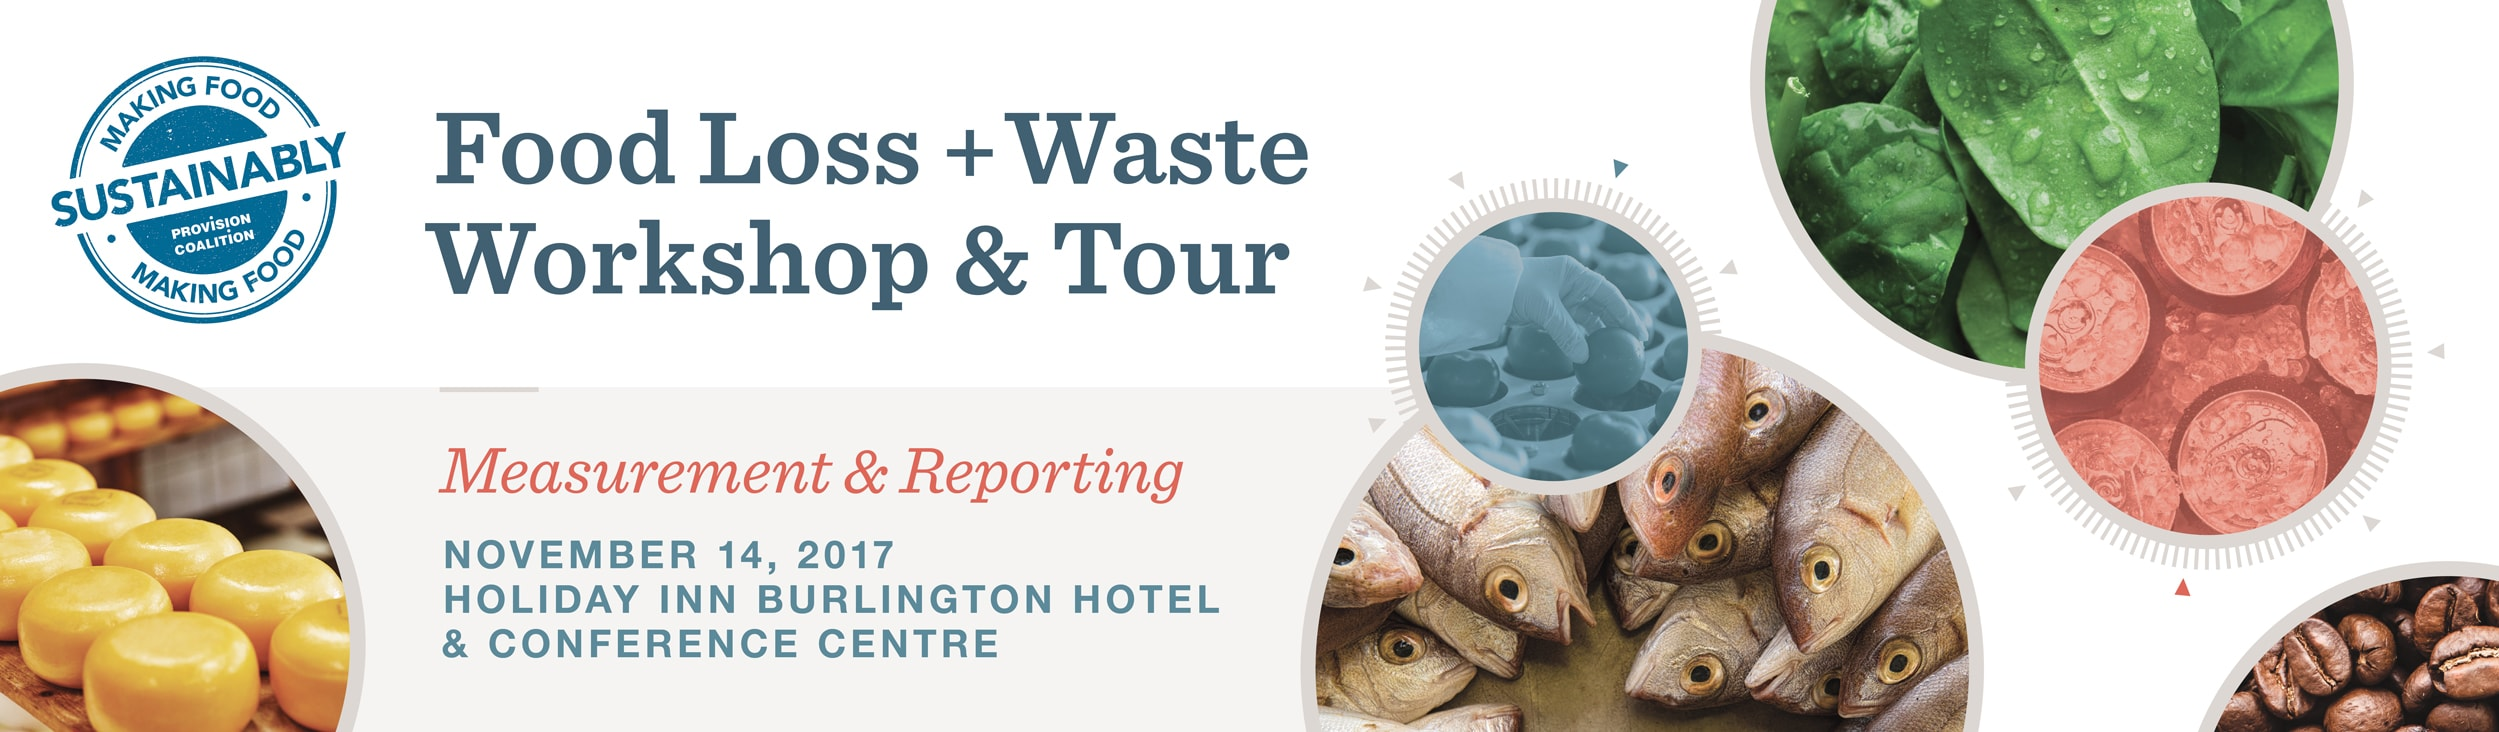 Provision Coalition, Sustainability, Food and beverage manufacturing, food loss and waste workshop and tour, food loss and waste, measurement and reporting, sustainability